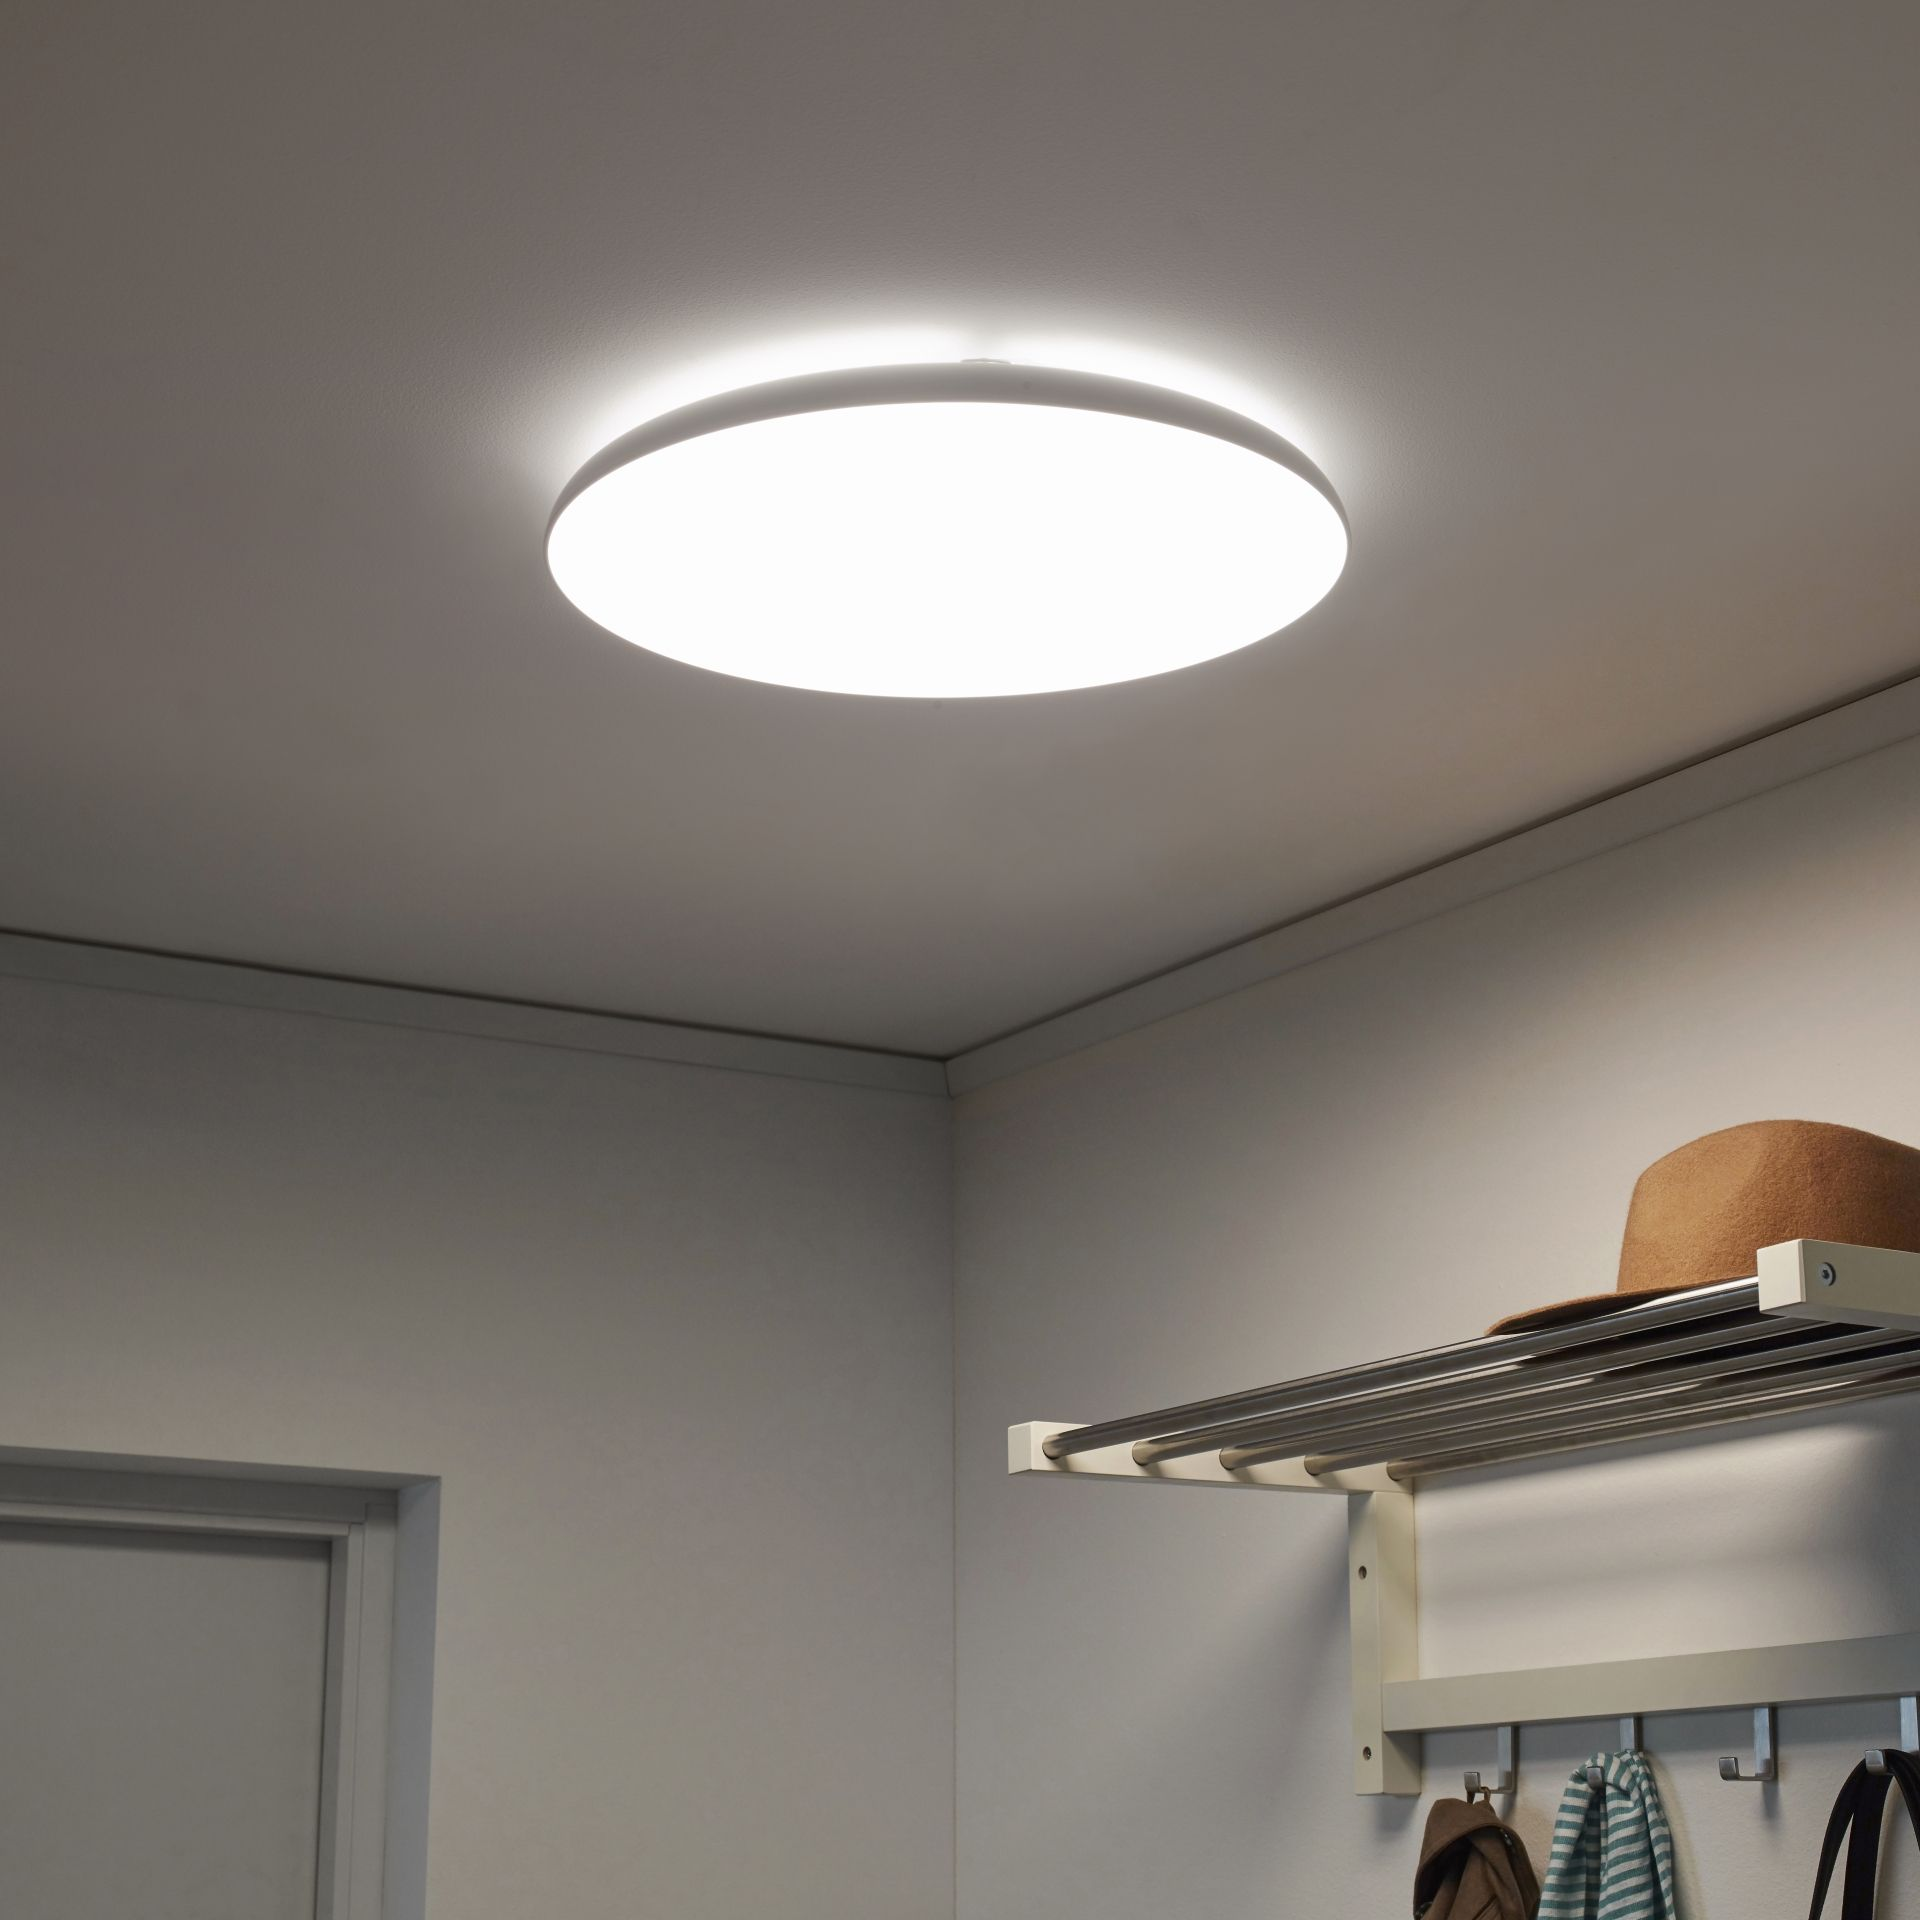 Keuken Lampen Led NymÅne Led Plafondlamp Wit In 2019 Verlichting Ceiling Lights